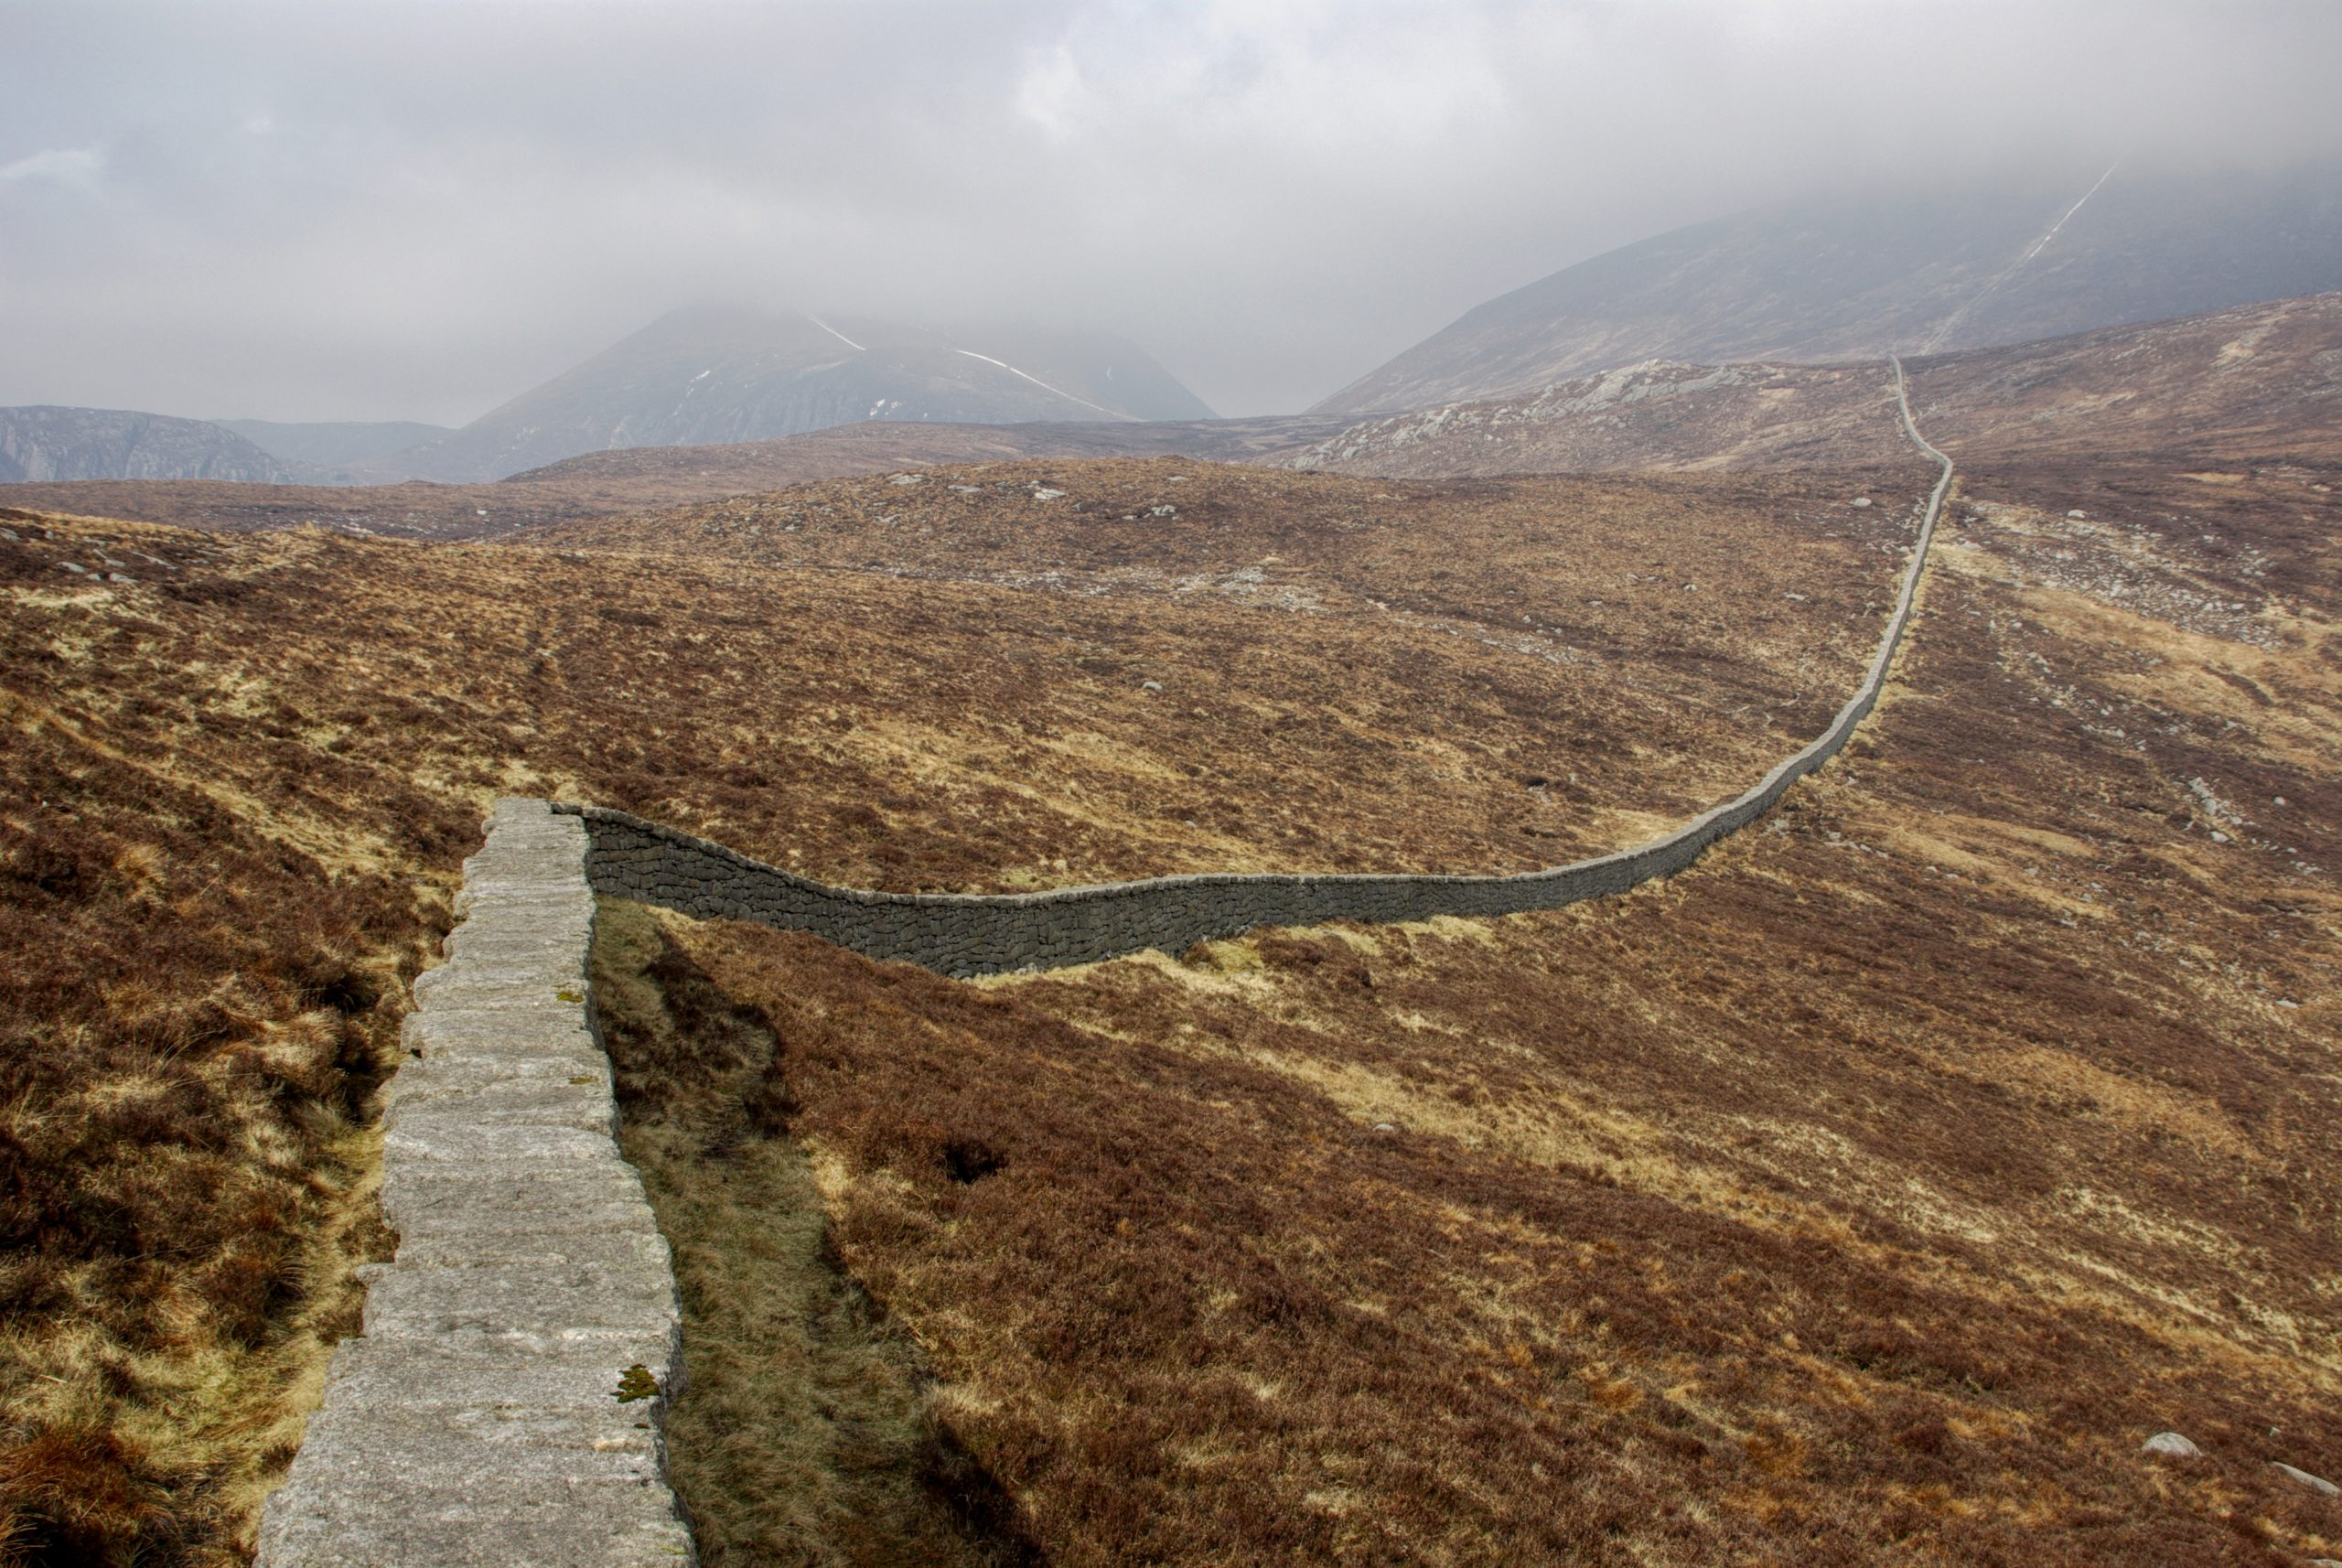 Mourne Wall on Slieve Donard